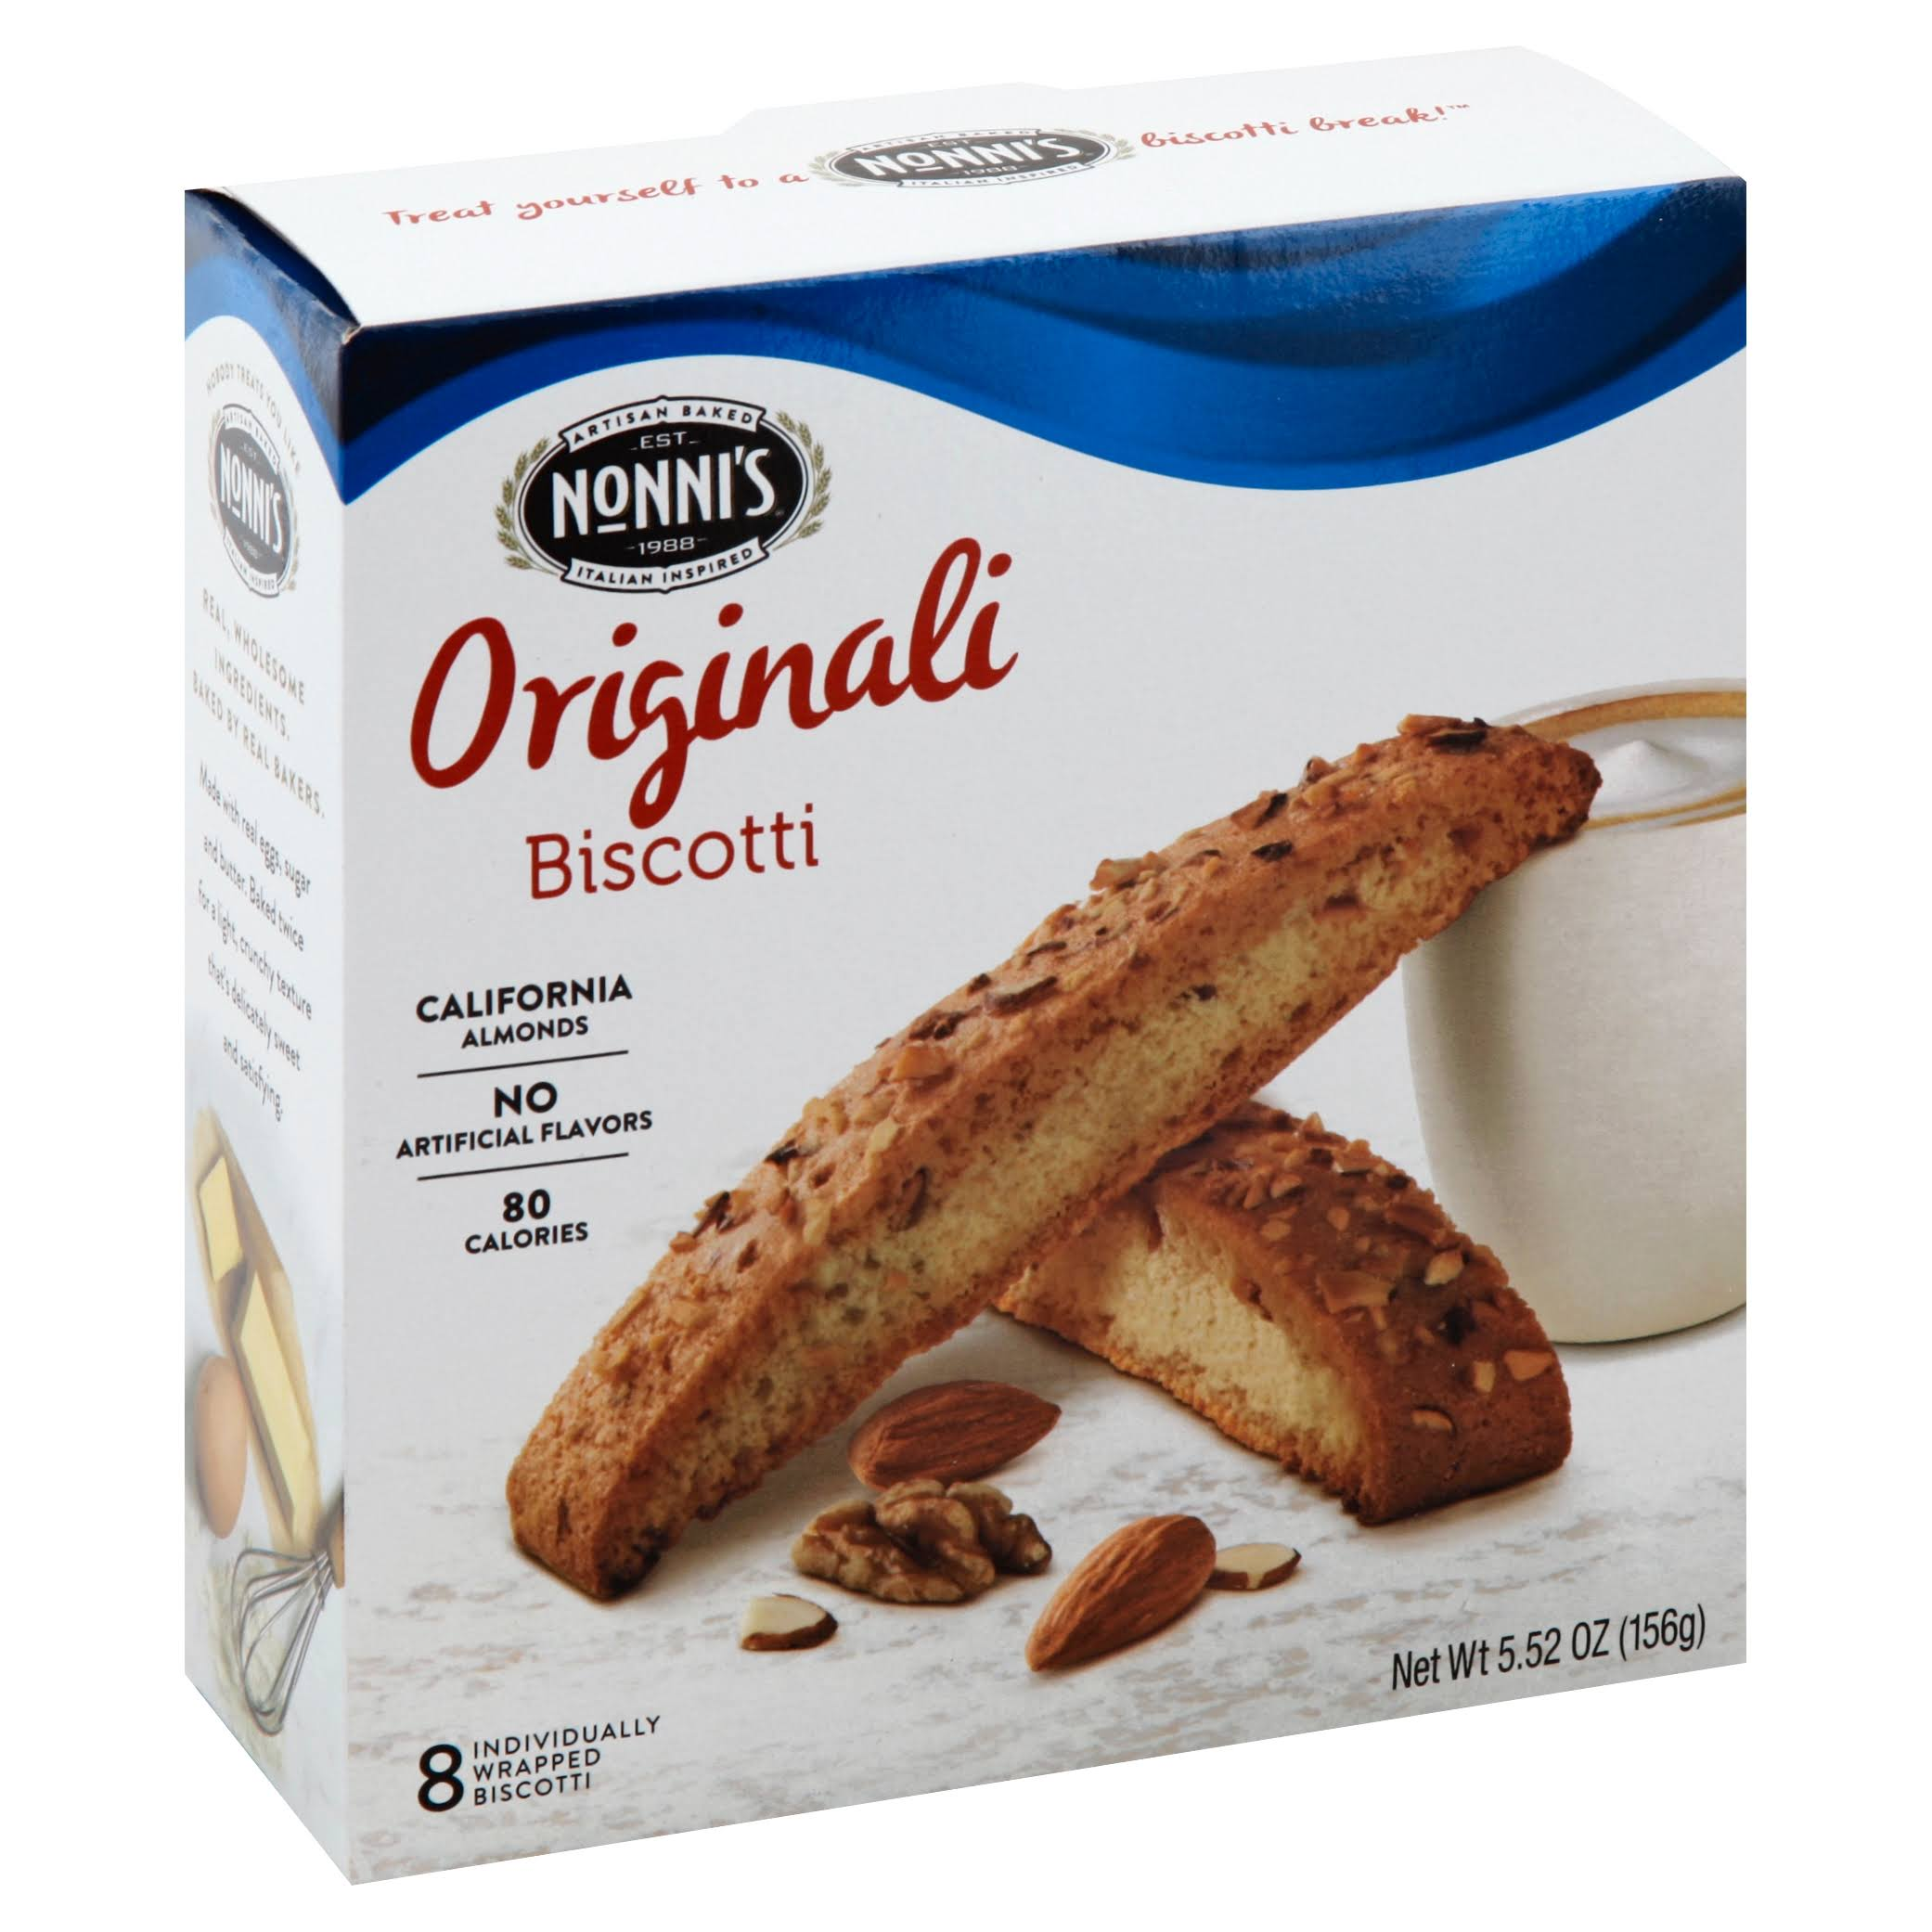 Nonnis Original Biscotti Cookie - 6pk